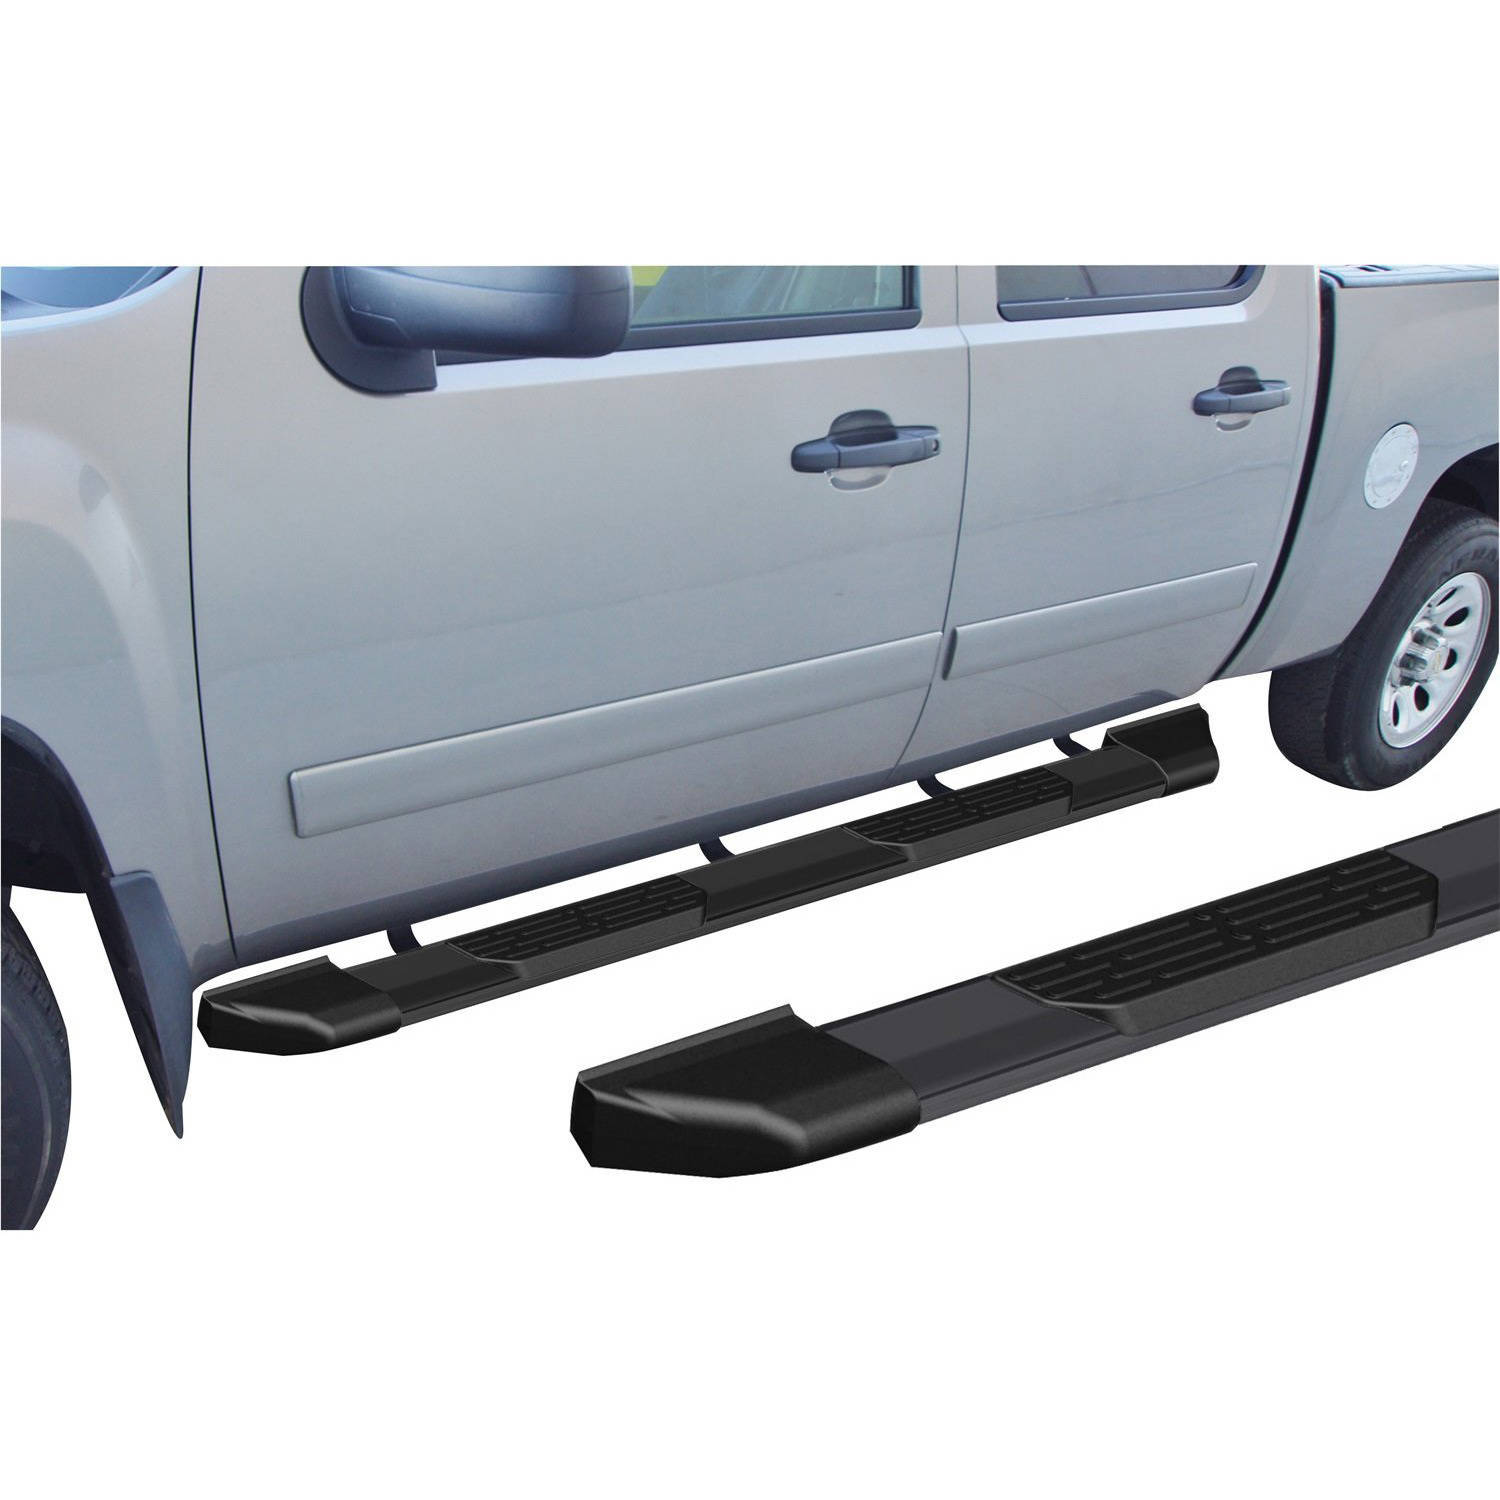 "Rampage 16170 Xtremeline 70"" Black Running Board, Pair"